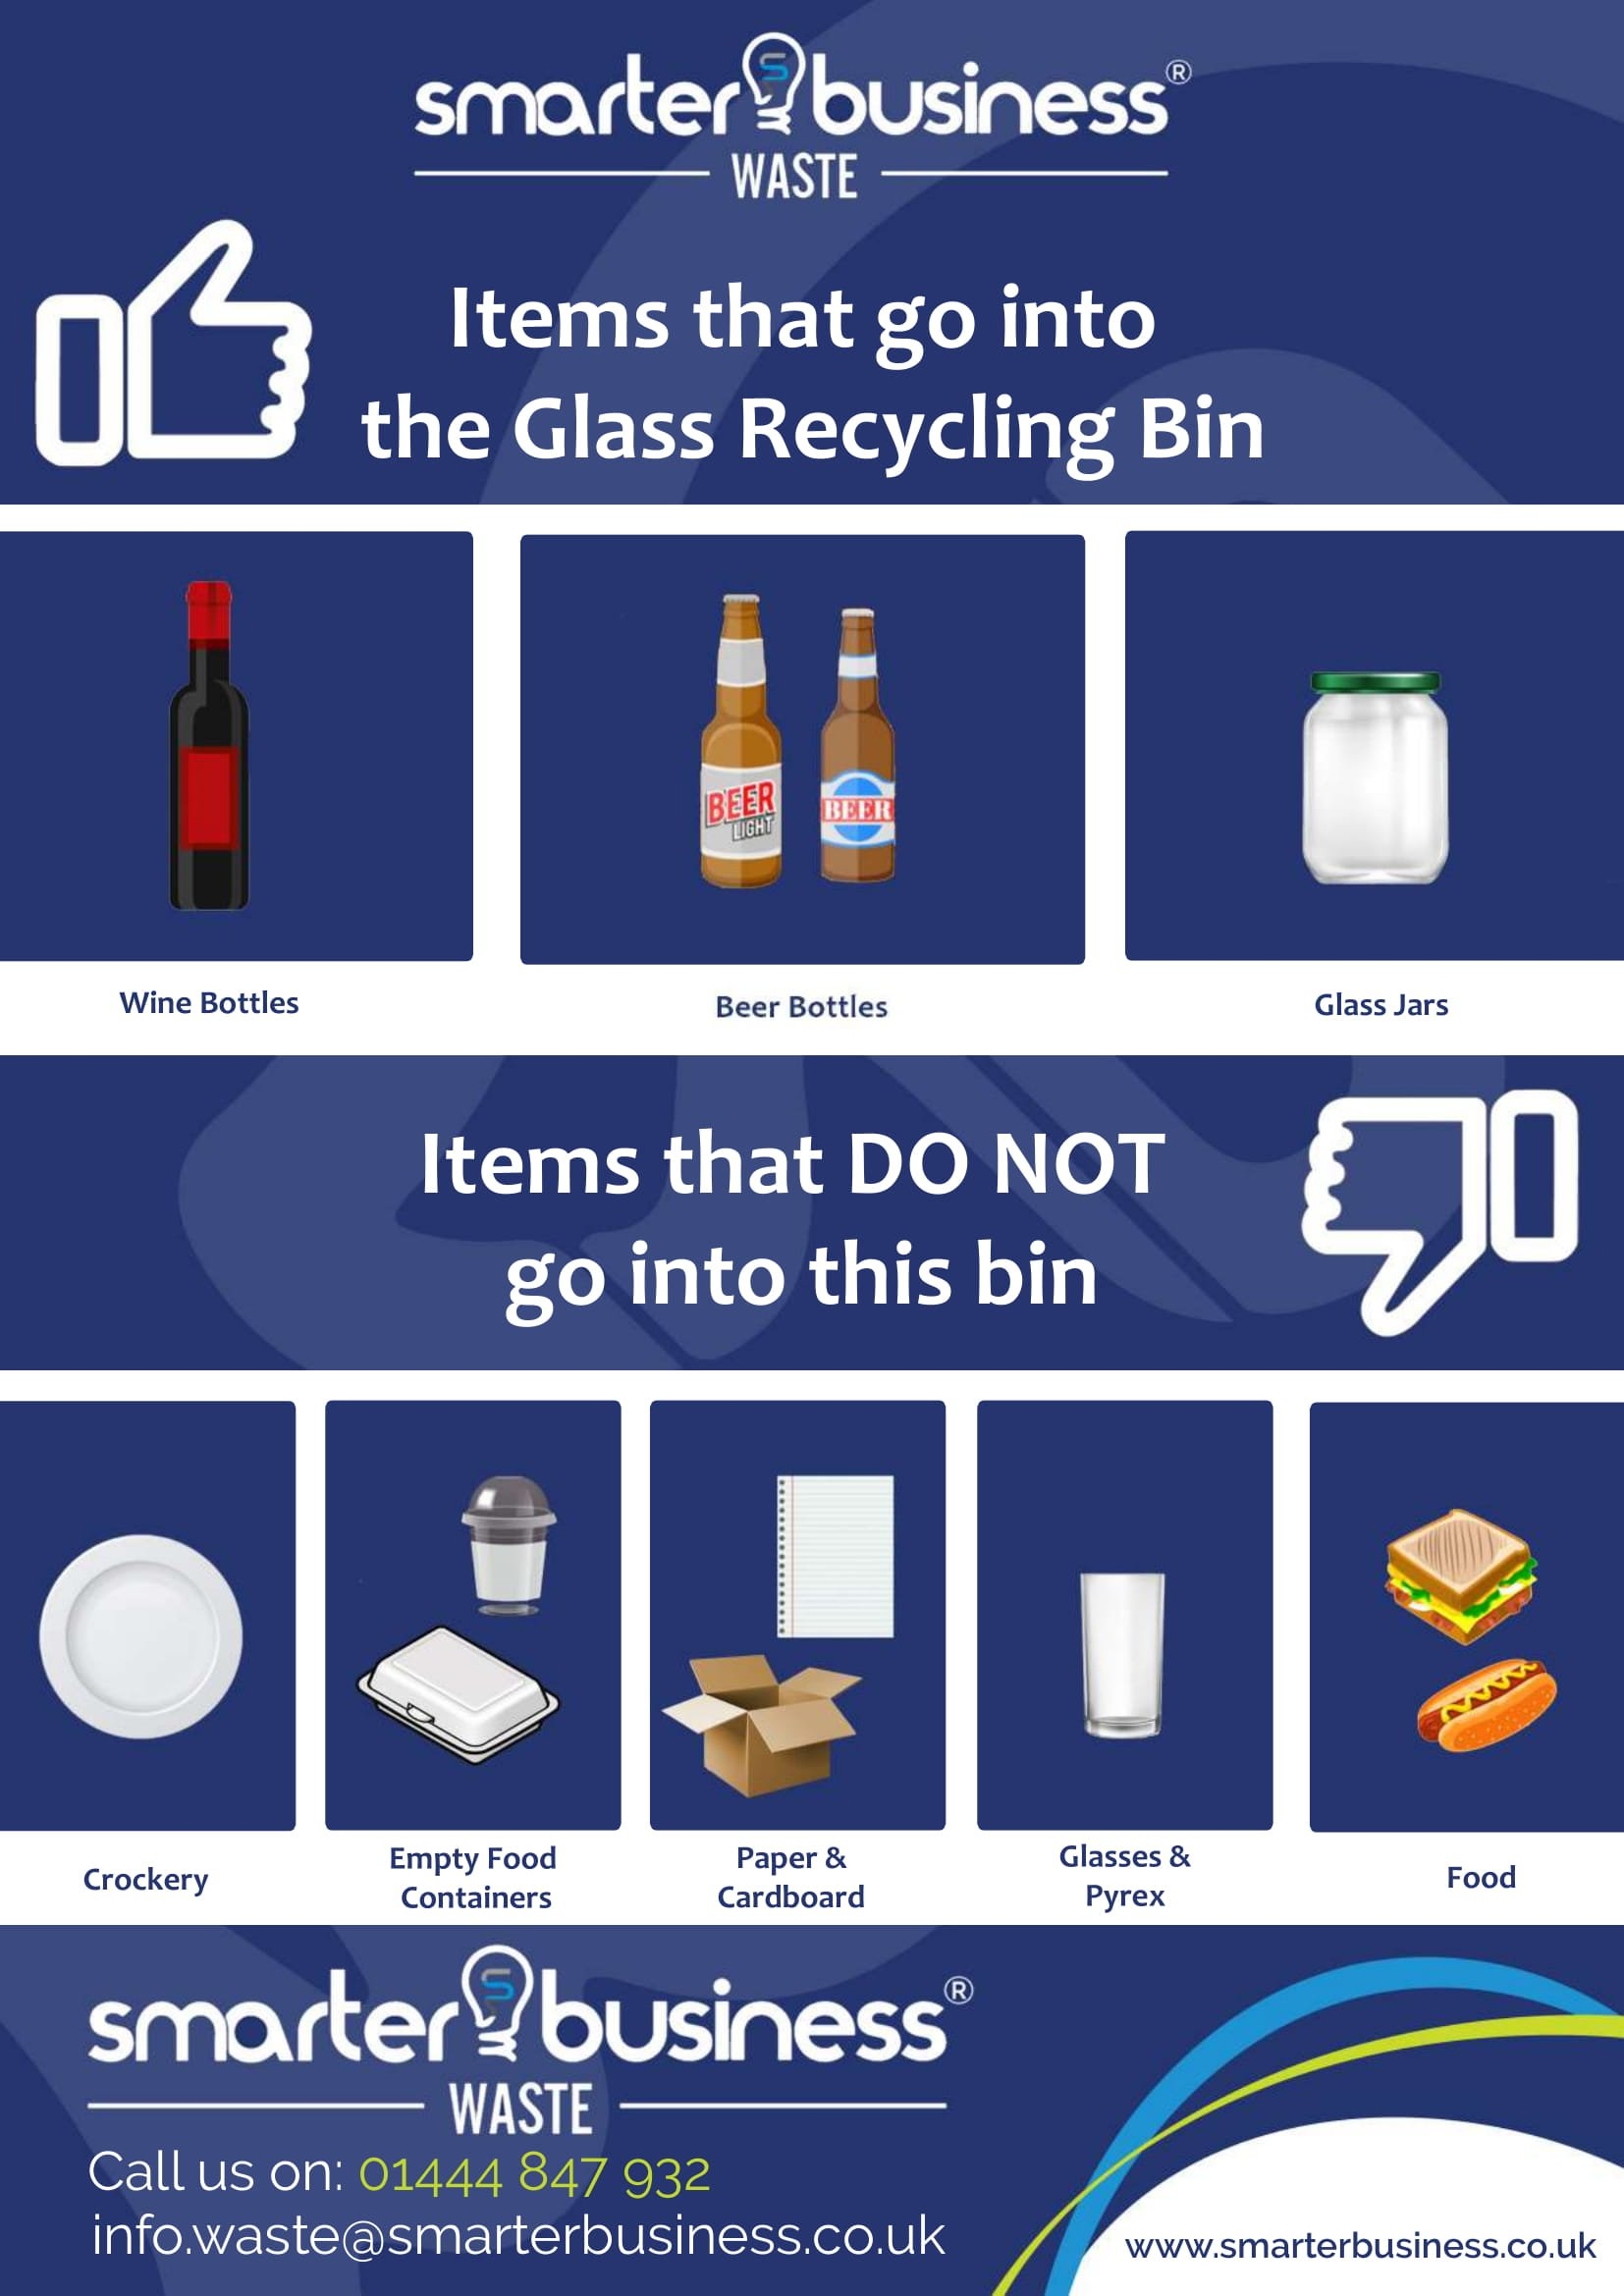 what can go into the glass recycling bin